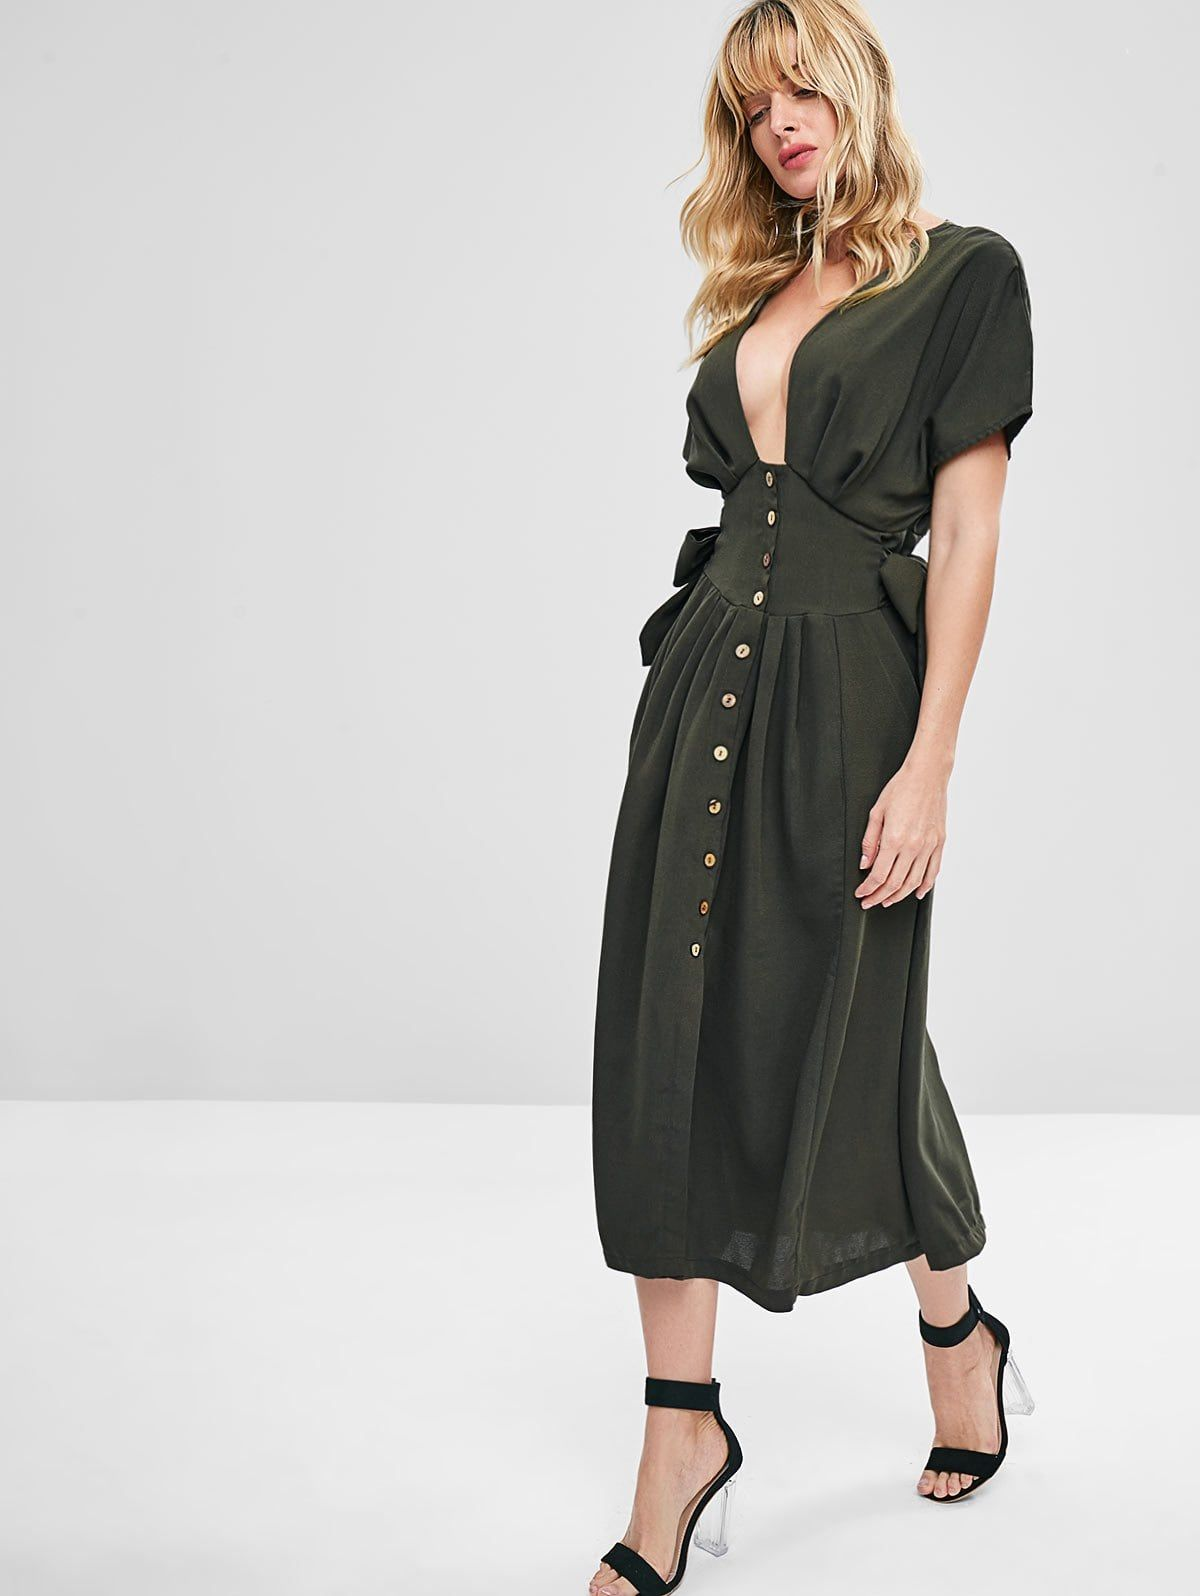 Knotted Button Up Midi Dress Army Green Affiliate Midi Button Knotted Green Army Ad Cute Casual Dresses Casual Dresses For Women Casual Dresses [ 1596 x 1200 Pixel ]